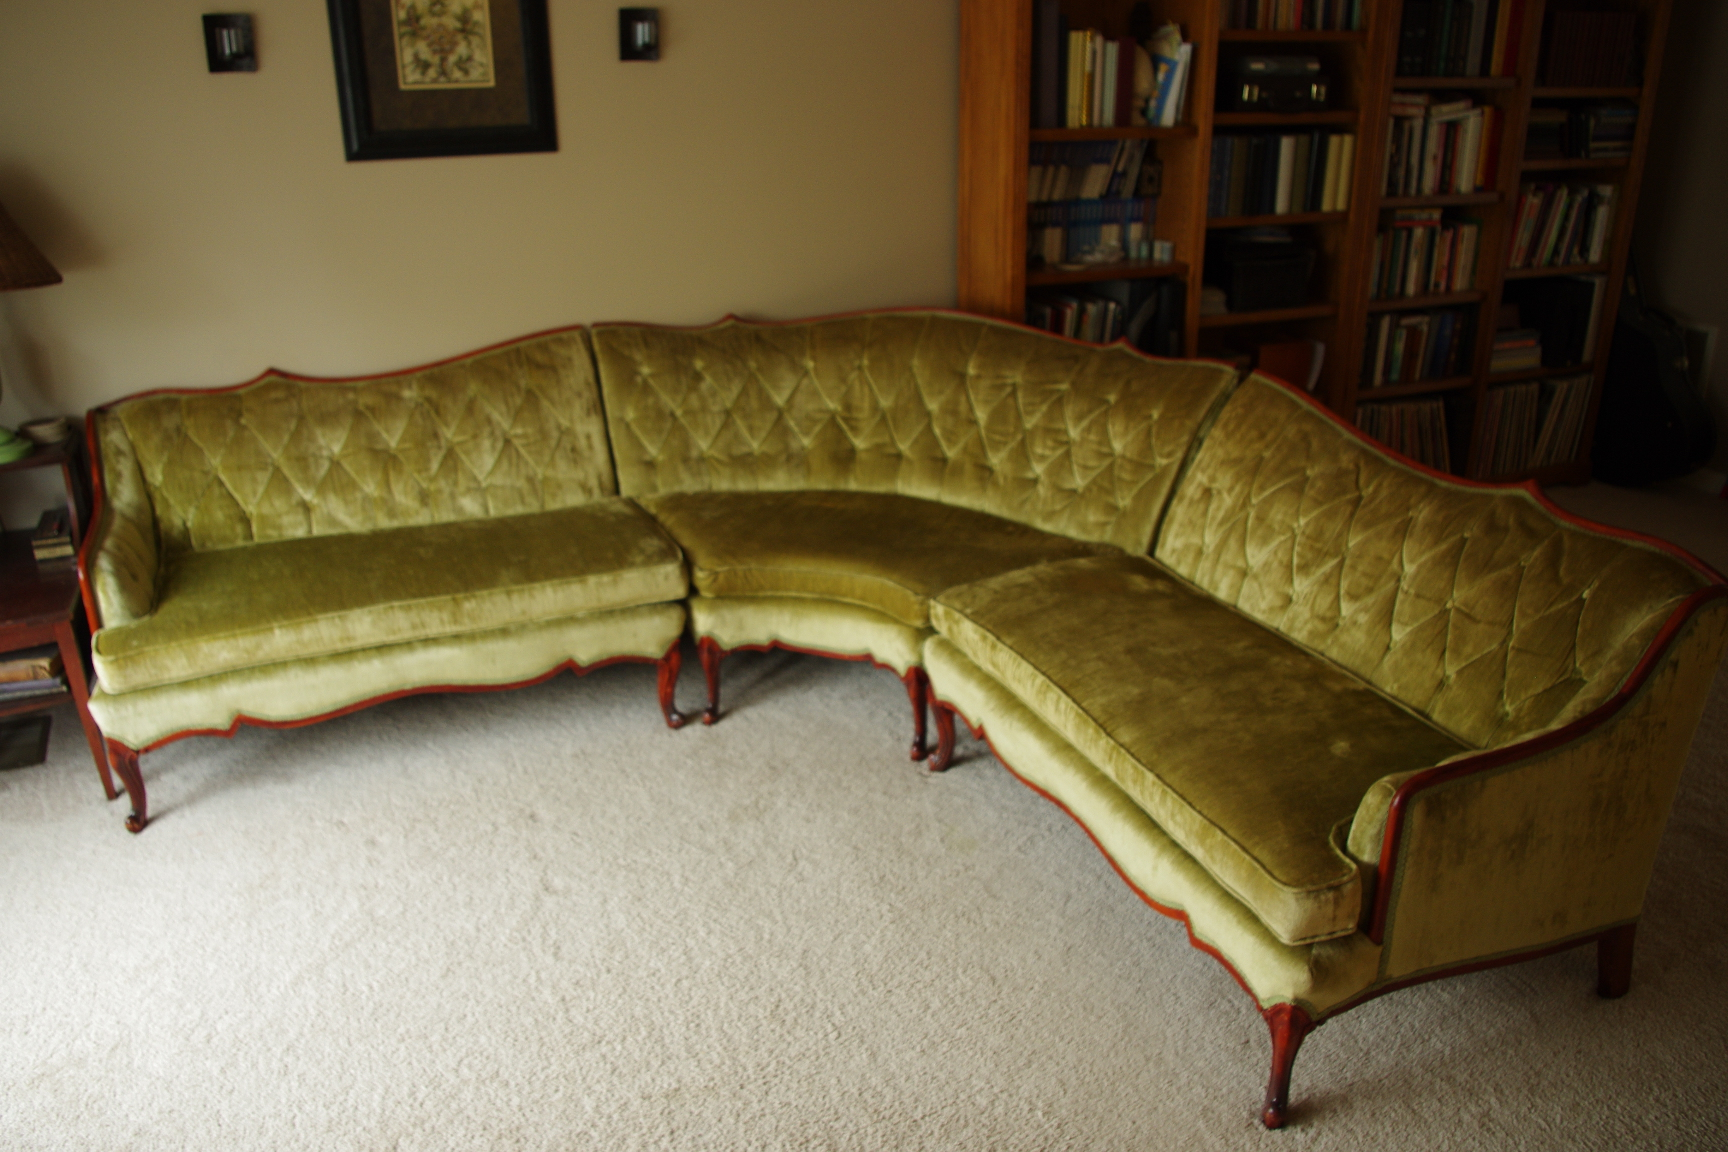 Classified Ads Vintage French Provincial Sectional Bel Air News : french provincial sectional sofa - Sectionals, Sofas & Couches